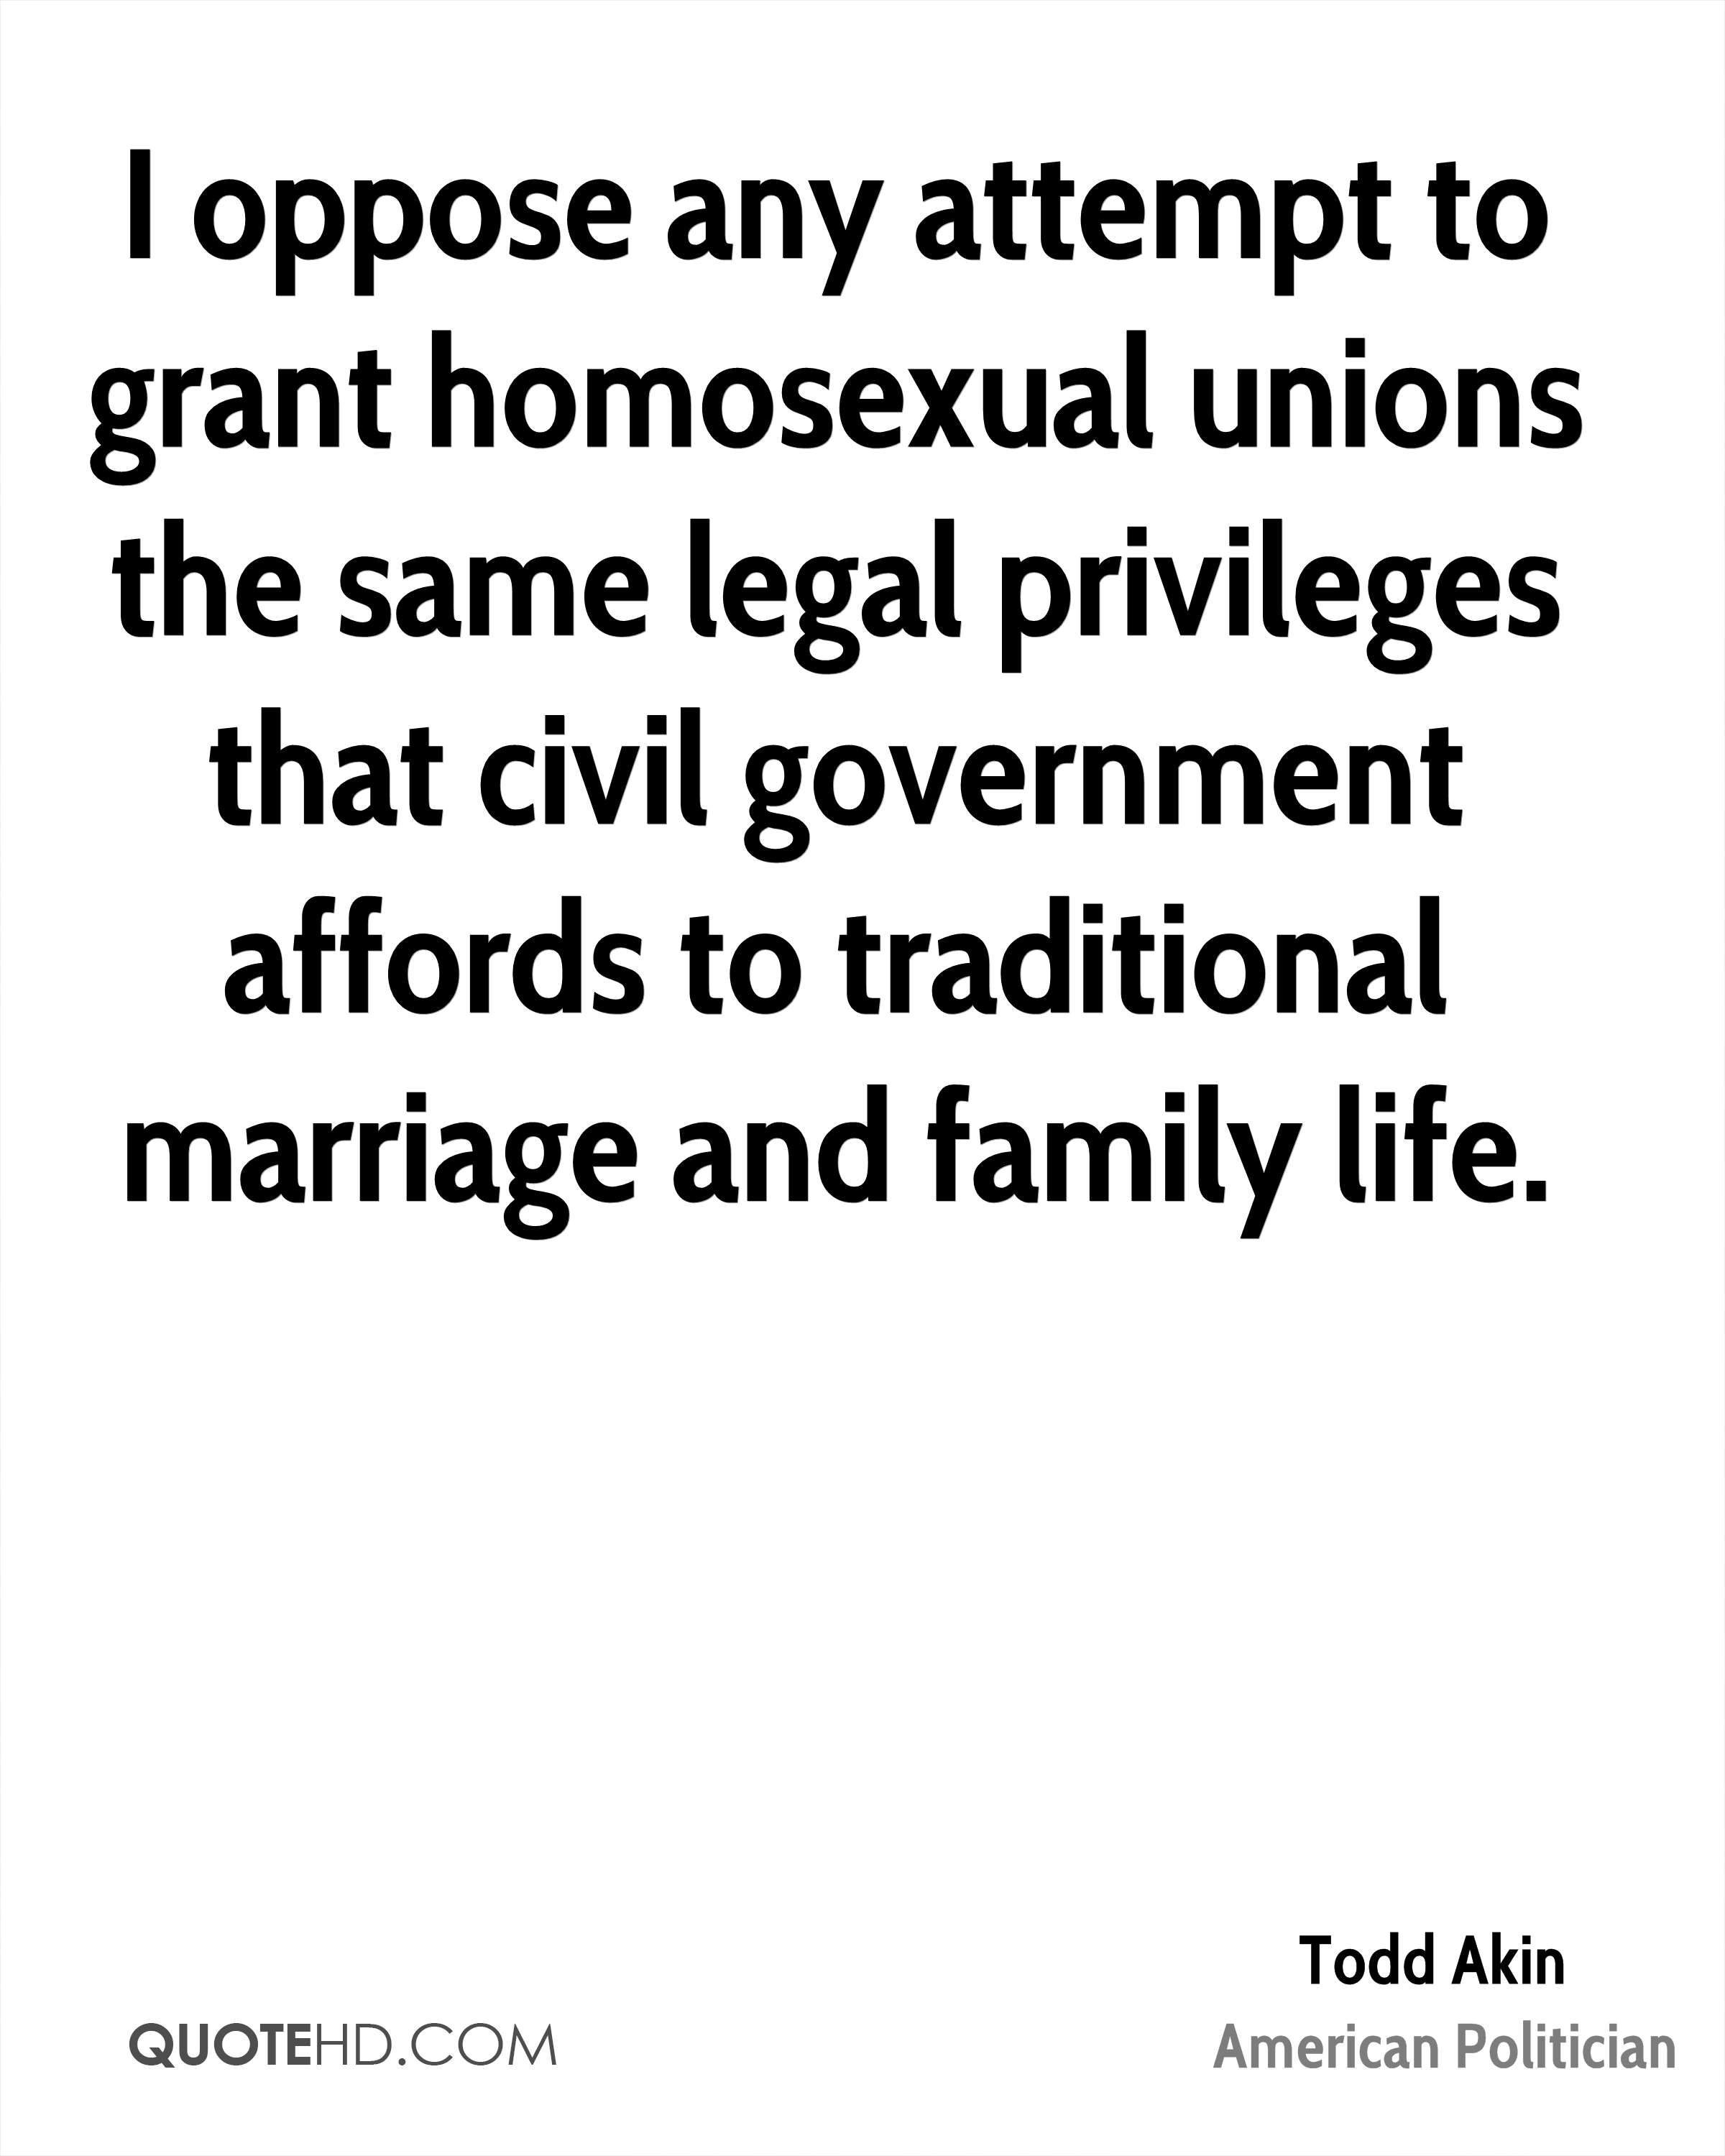 I oppose any attempt to grant homosexual unions the same legal privileges that civil government affords to traditional marriage and family life.